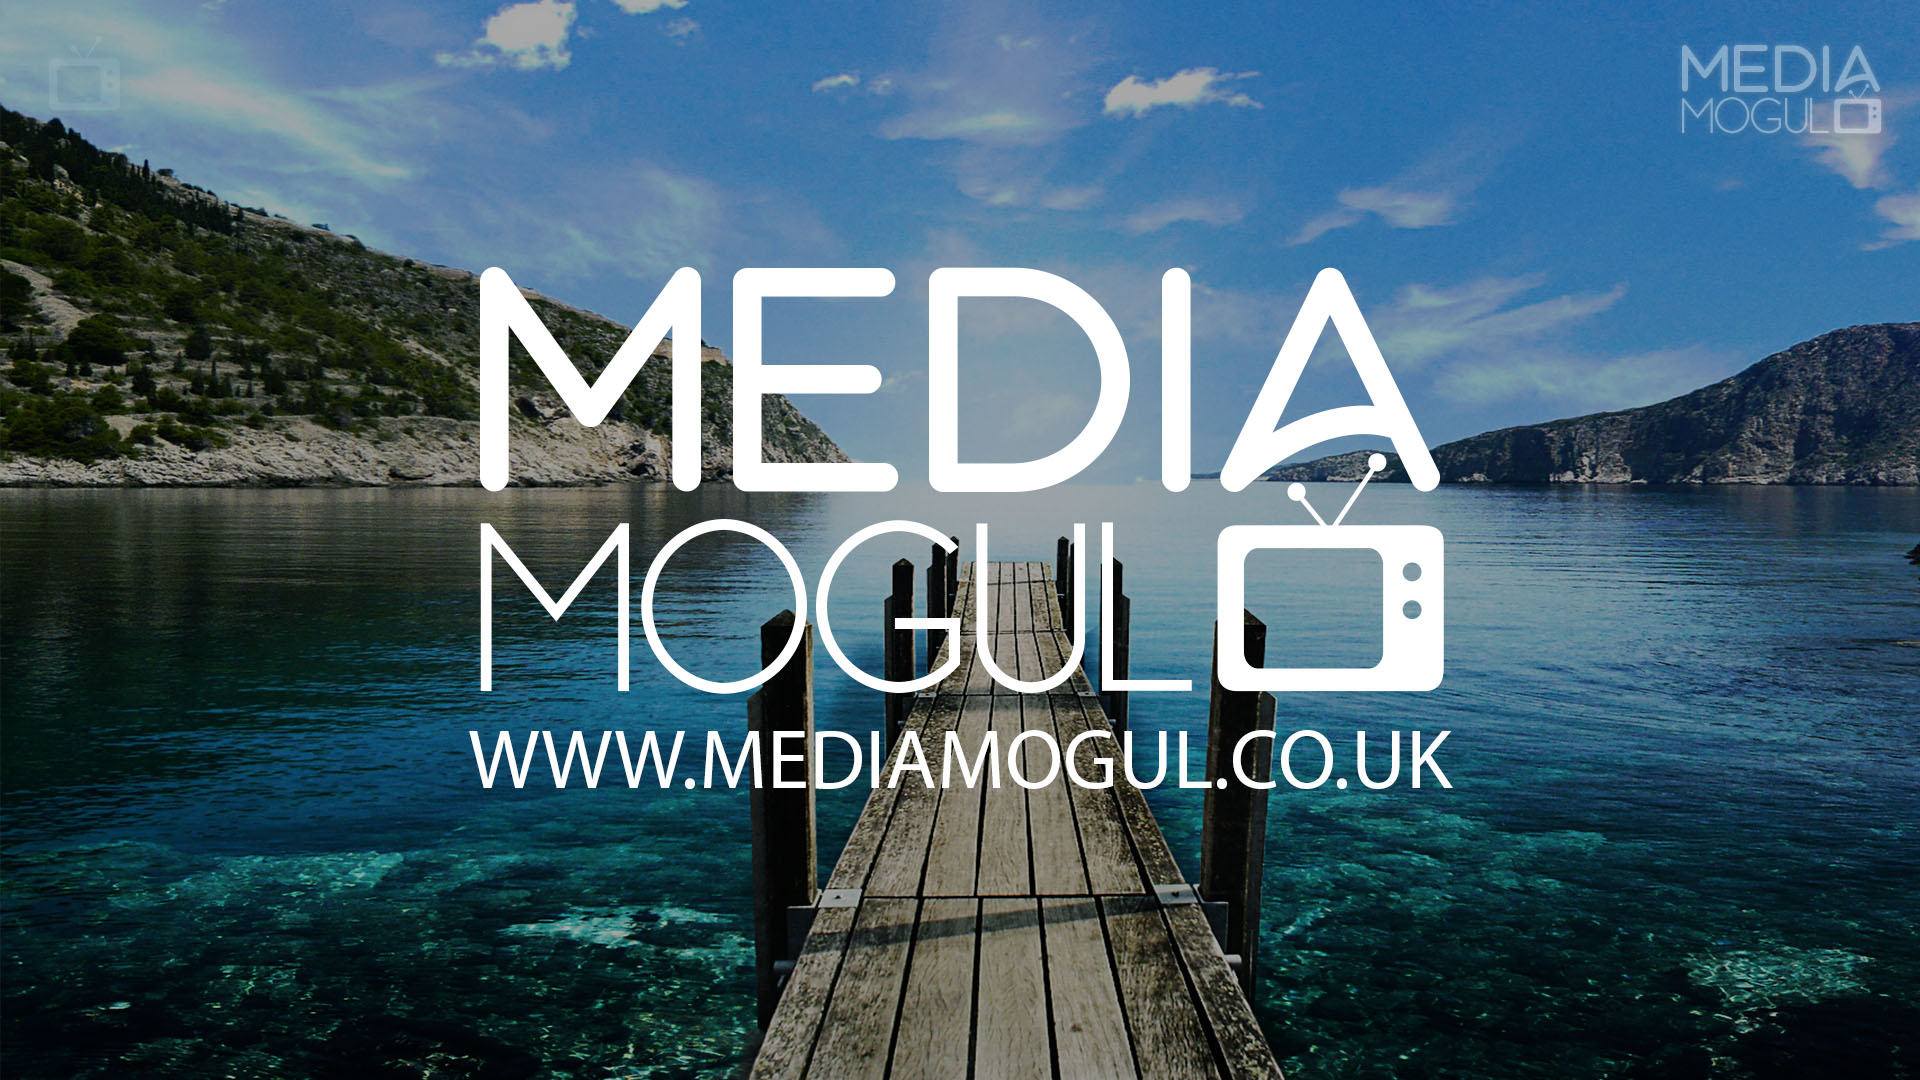 Media Mogul Backdrop 7